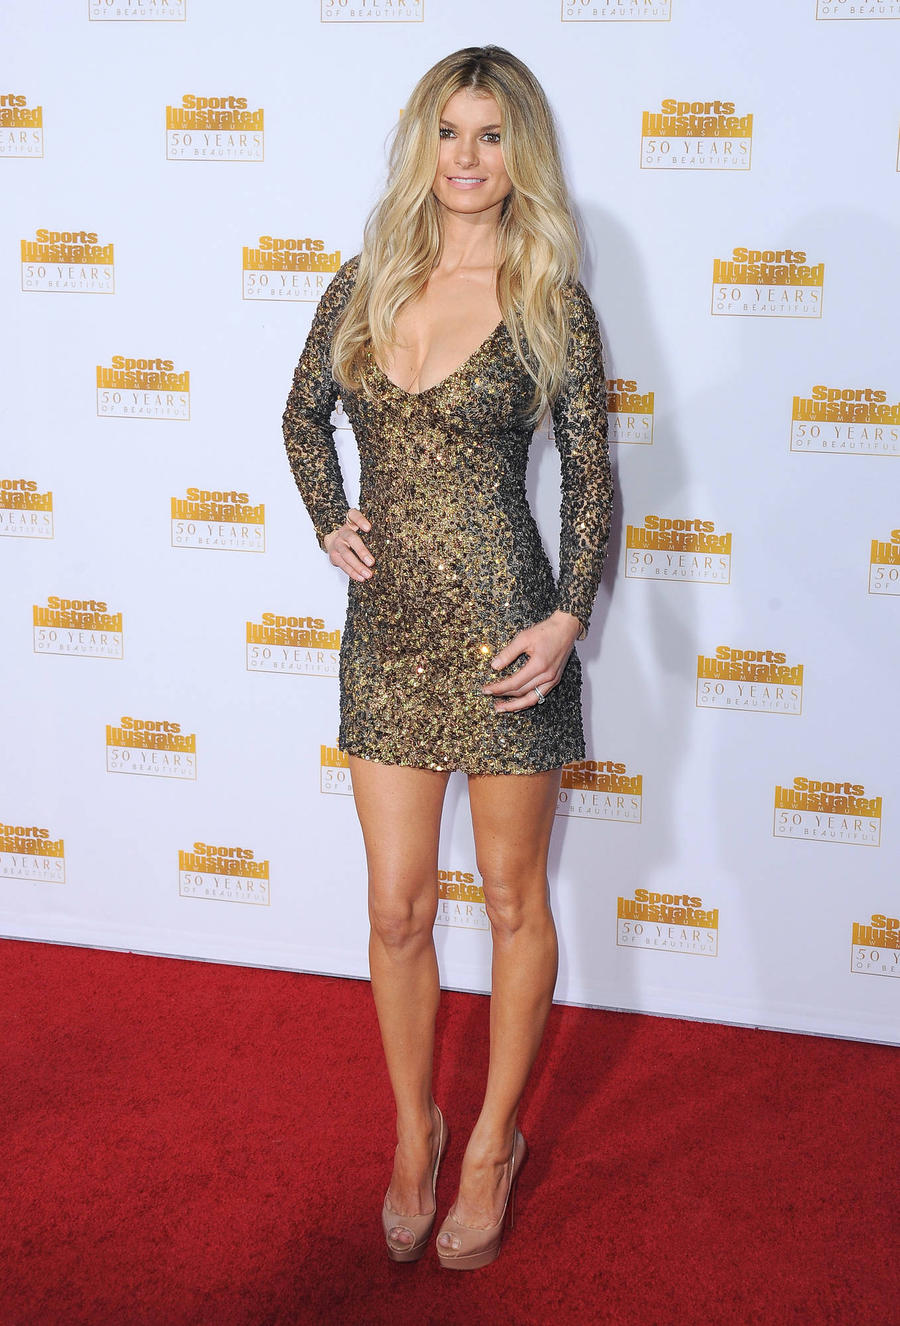 Marisa Miller Loses Breach Of Contract Lawsuit